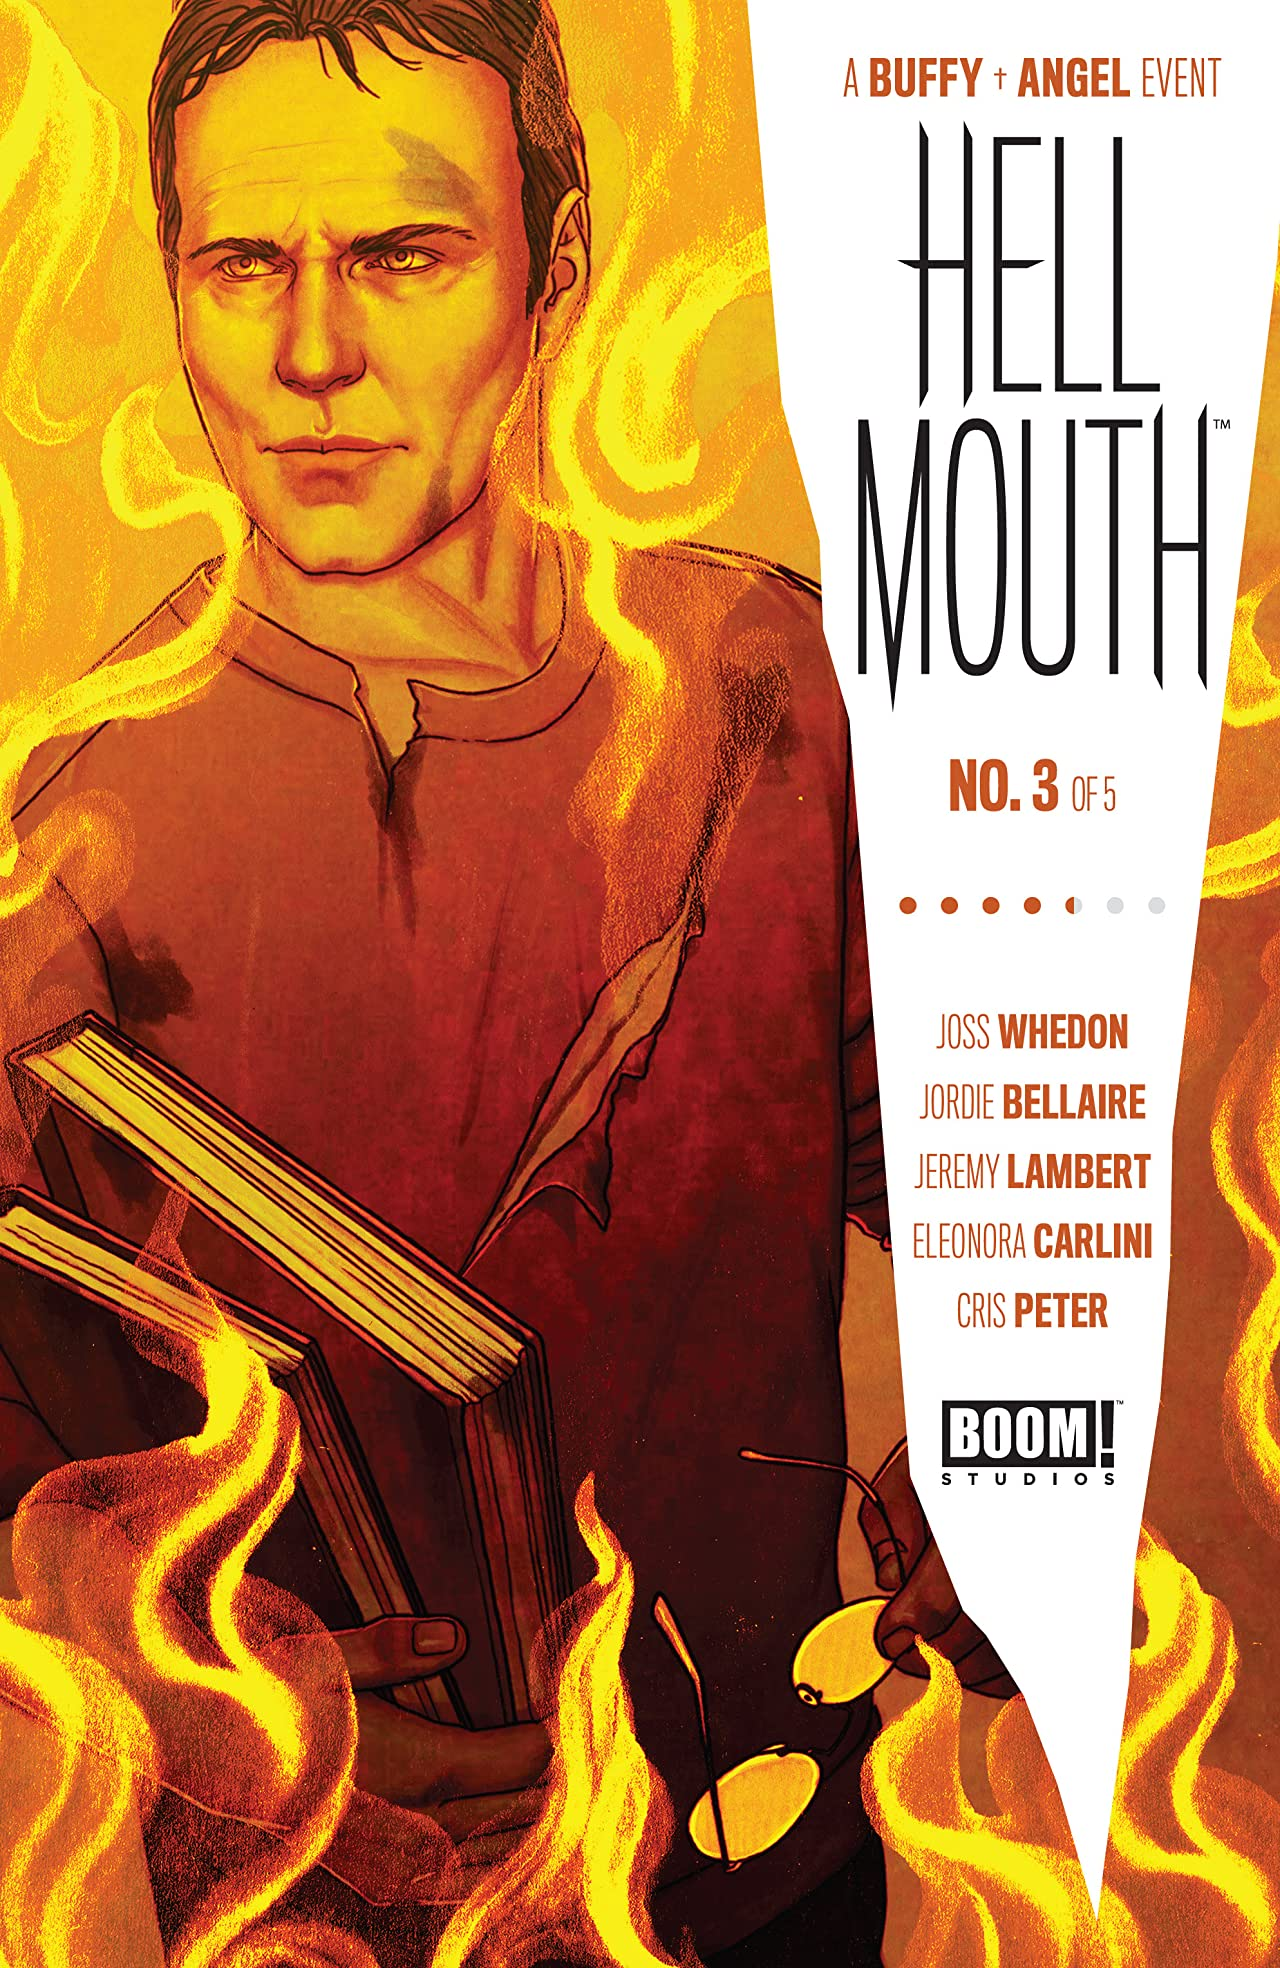 Buffy the Vampire Slayer/Angel: Hellmouth No.3